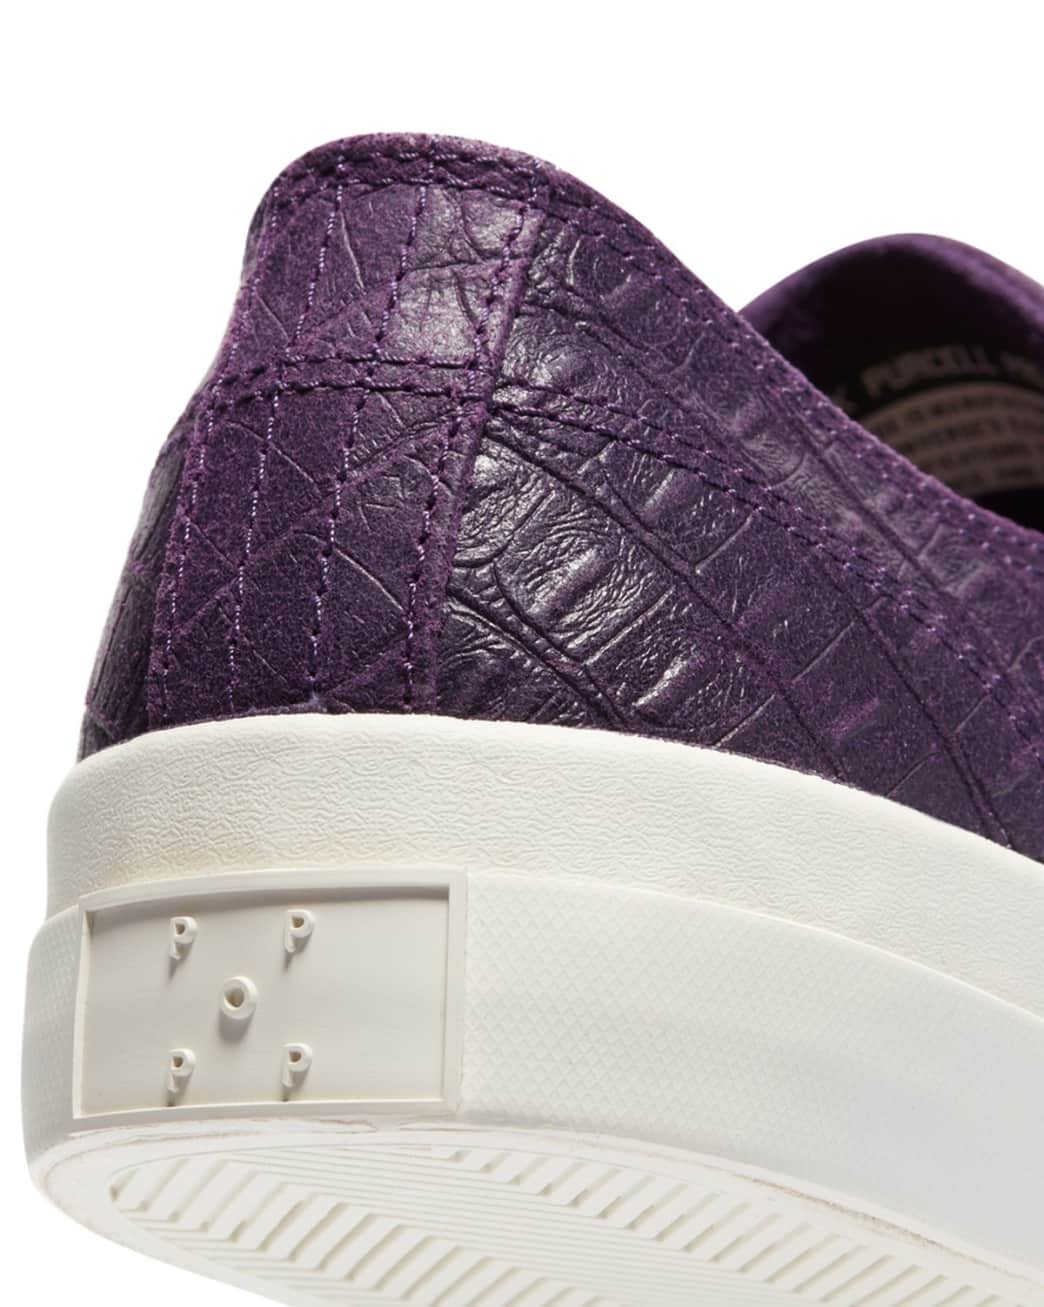 Converse CONS x Pop Trading Company JP Pro Ox Shoes - Dark Purple 'Dragonskin' | Shoes by Converse Cons 6